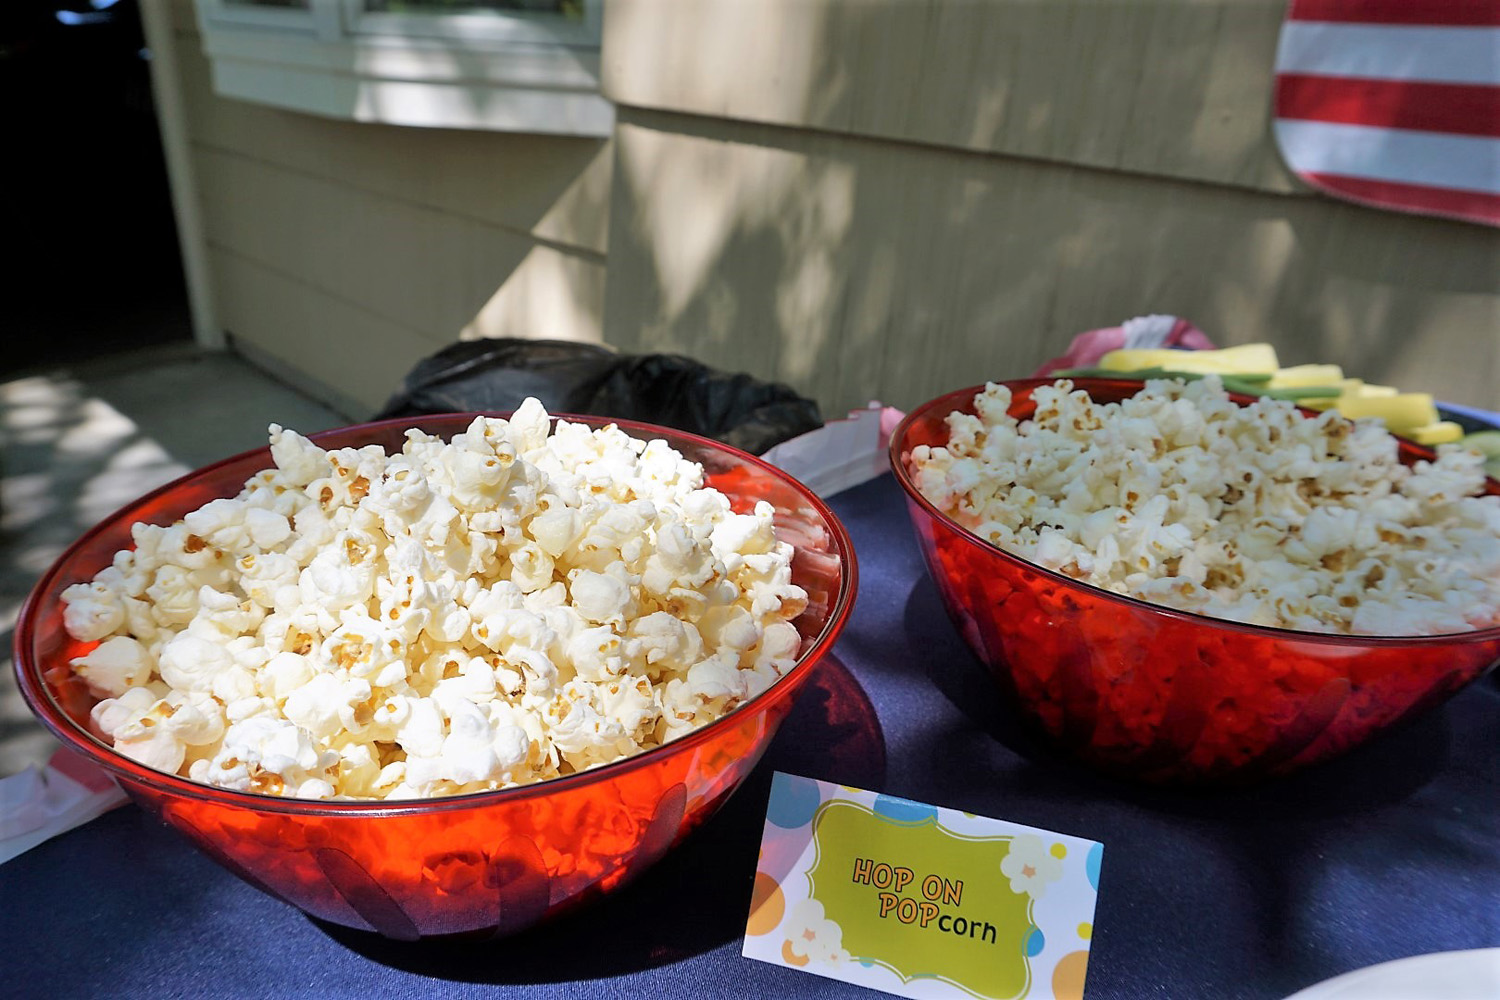 Hop on Popcorn for a Dr. Suess themed party